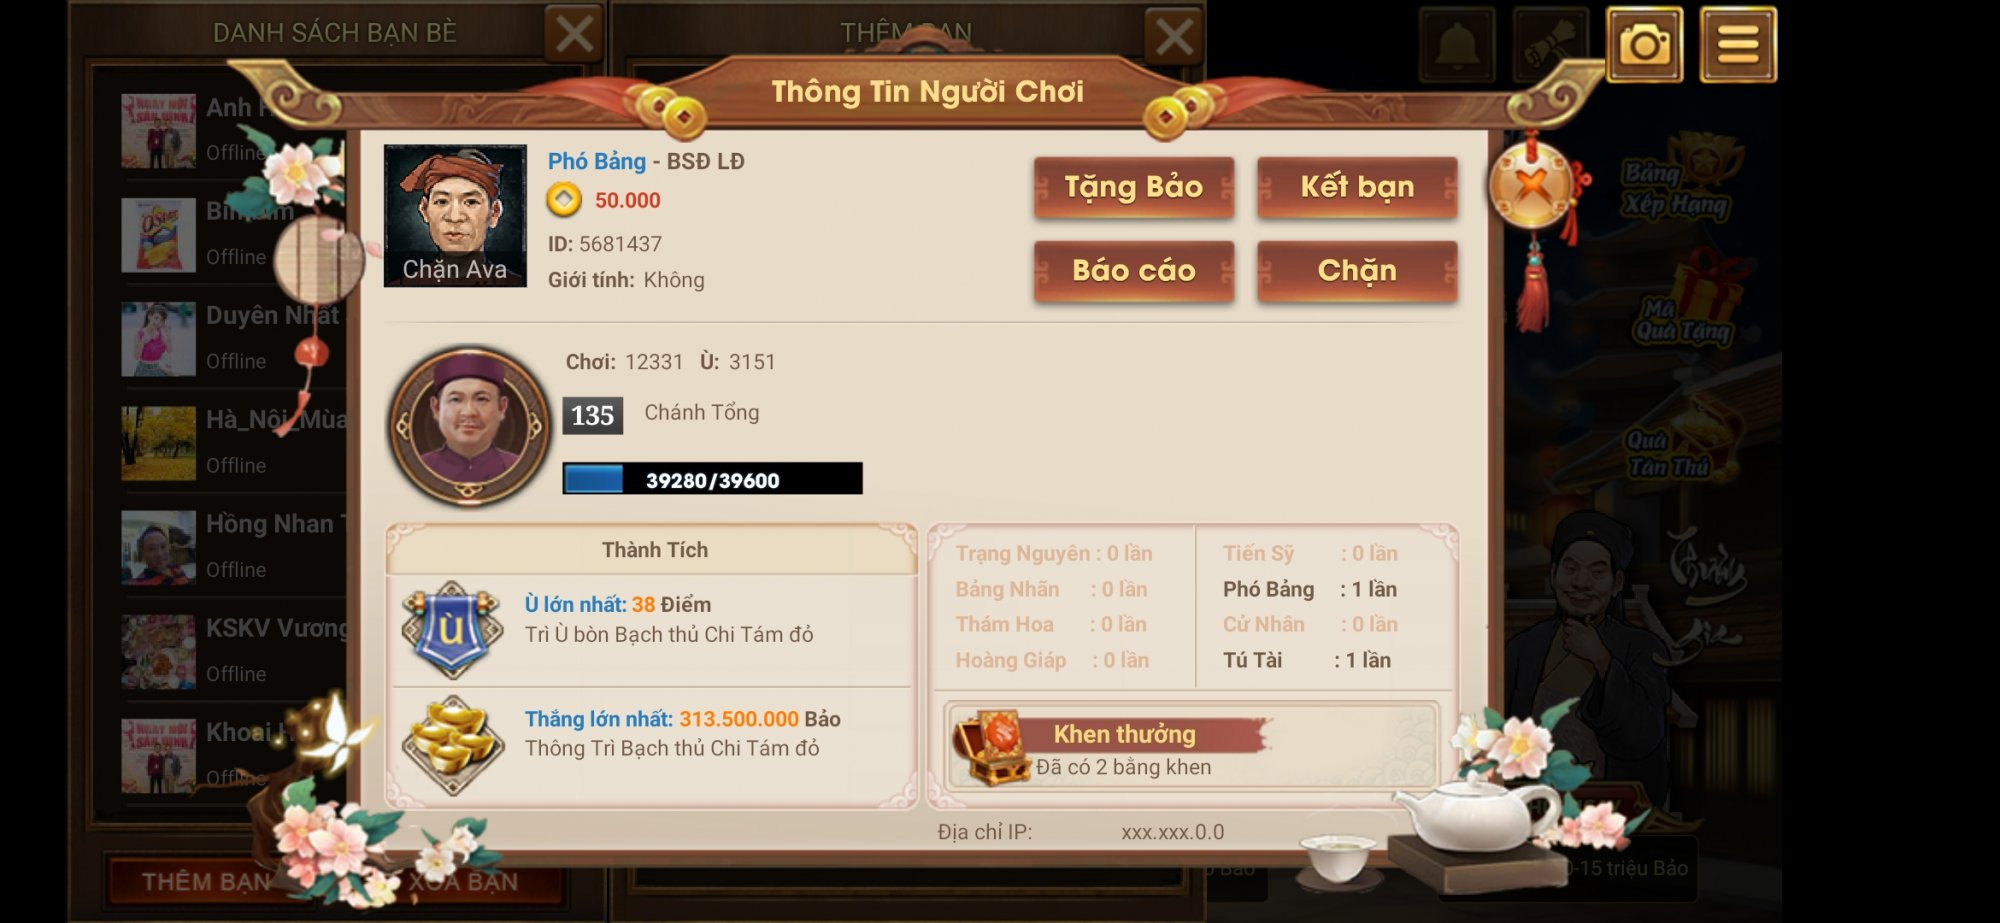 Screenshot_2020-06-24-19-51-10-300_com.vietsao.chandangian.